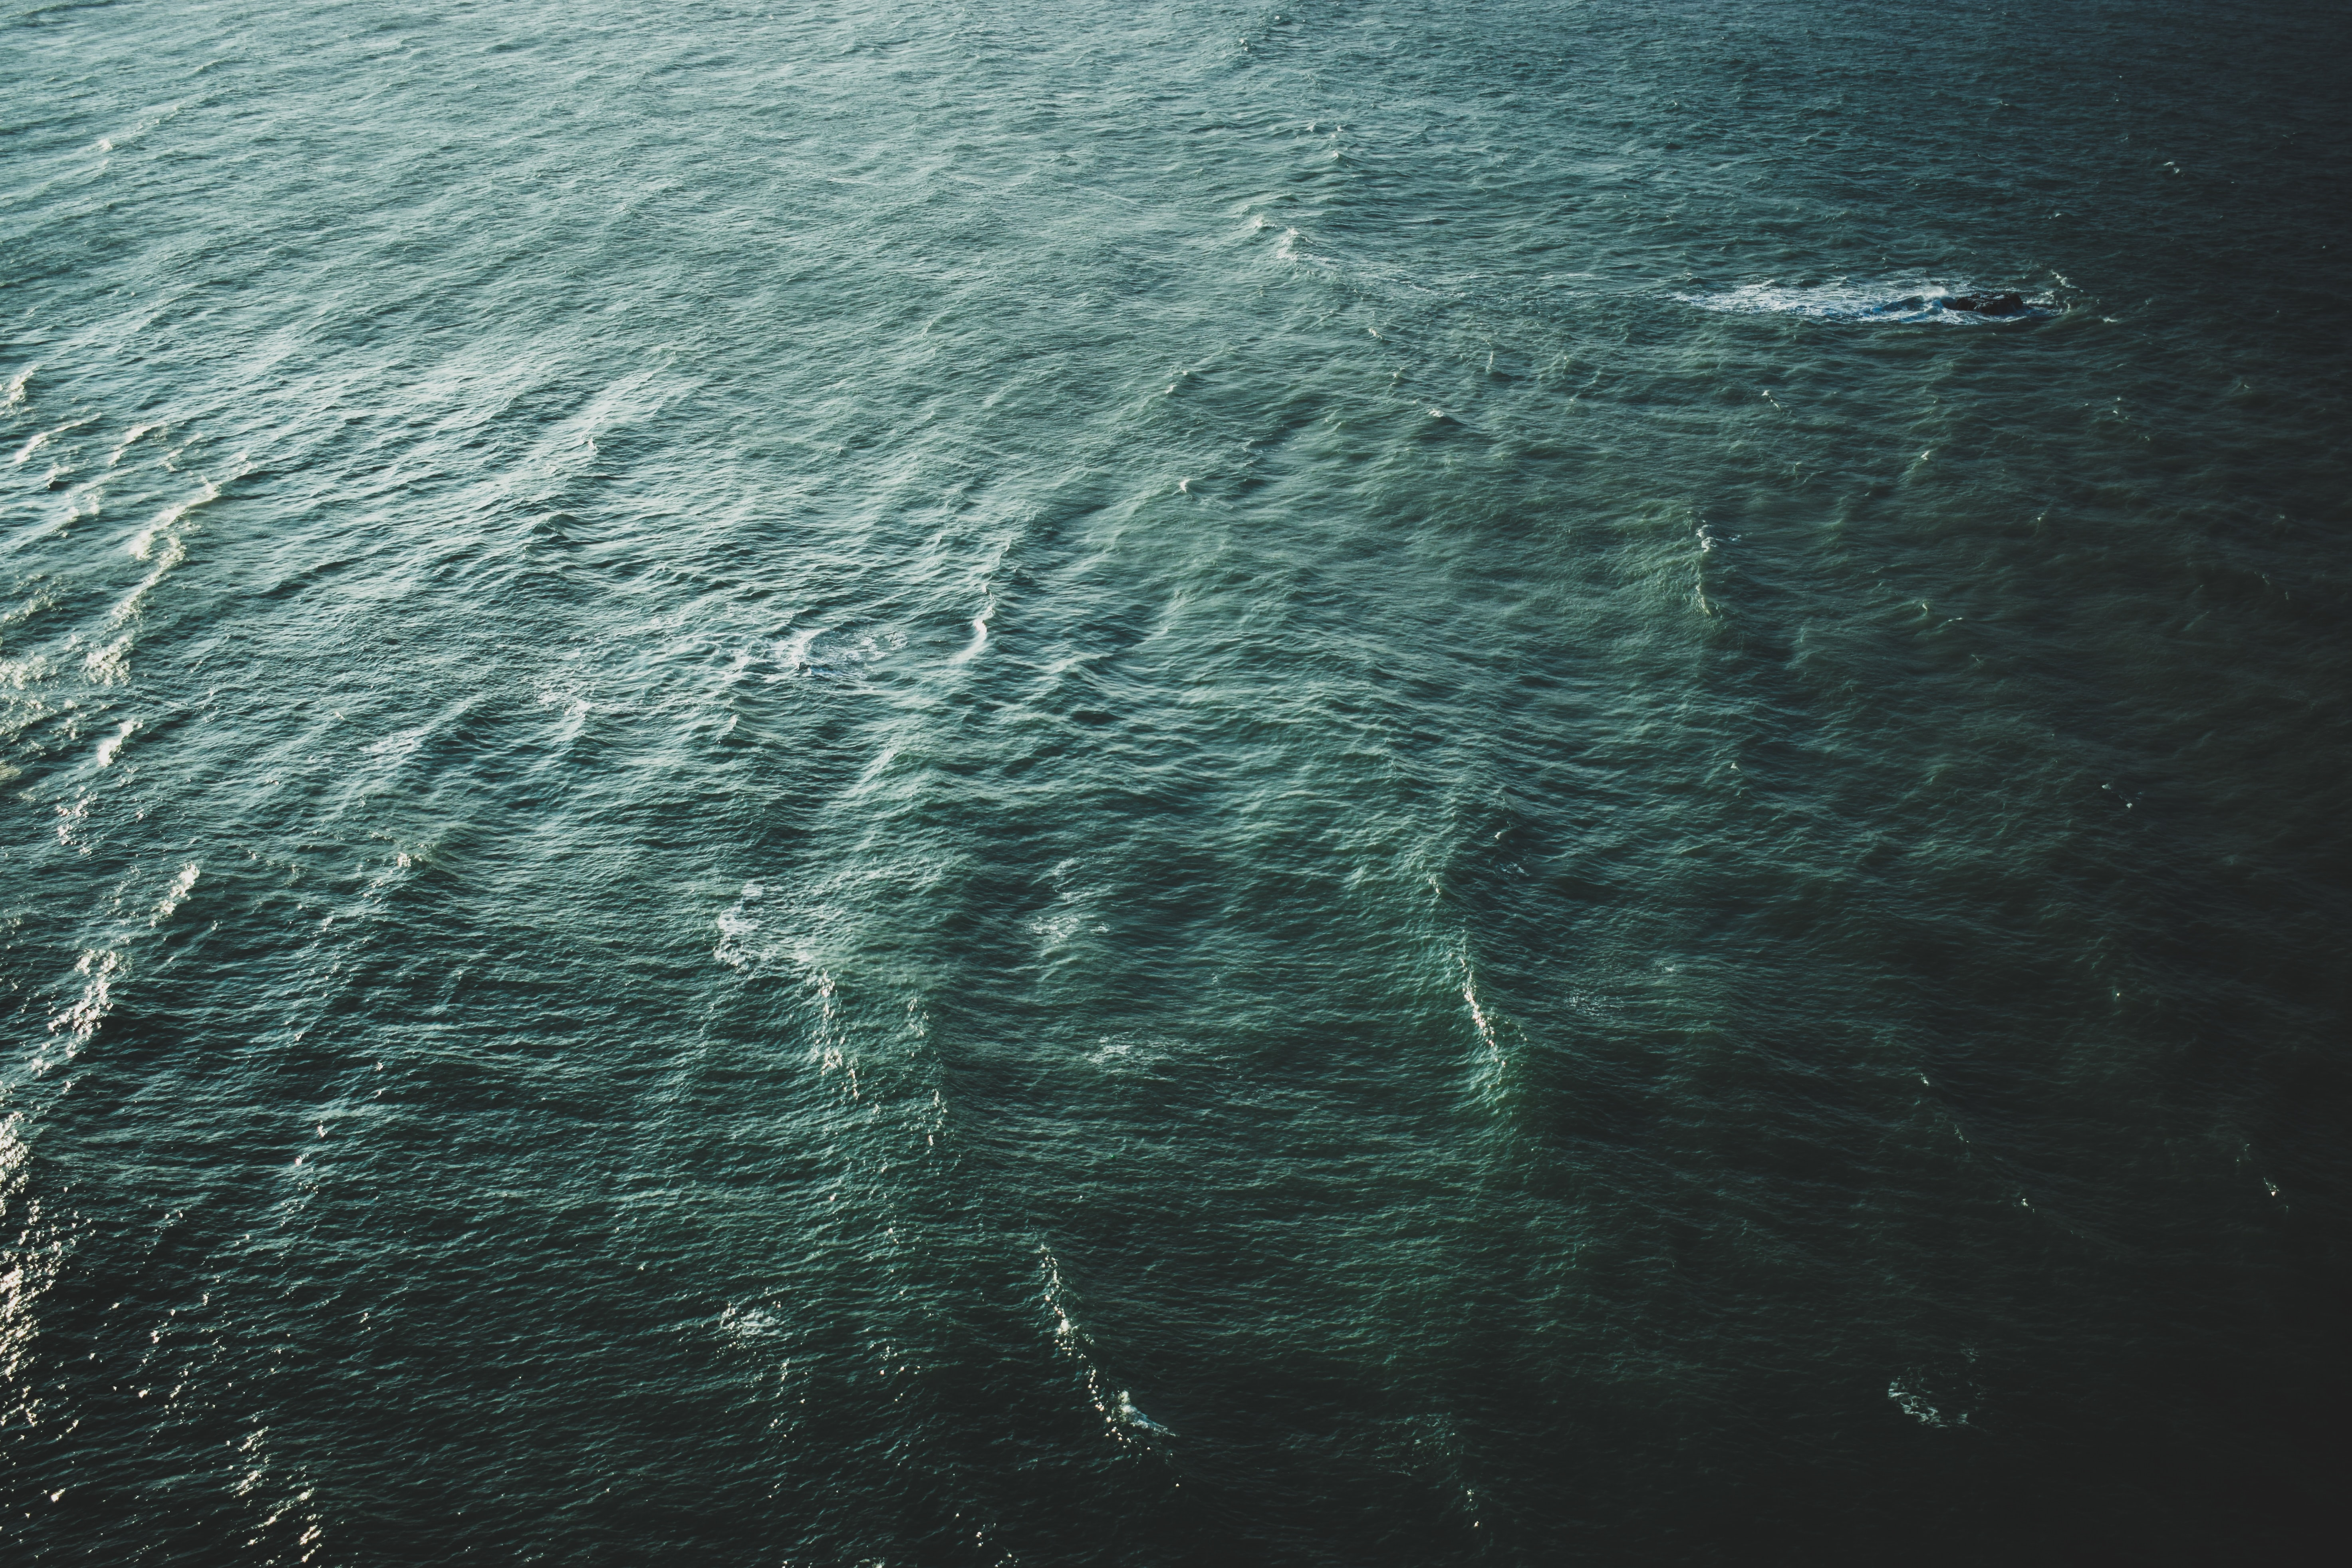 aerial photo of body of water during daytime